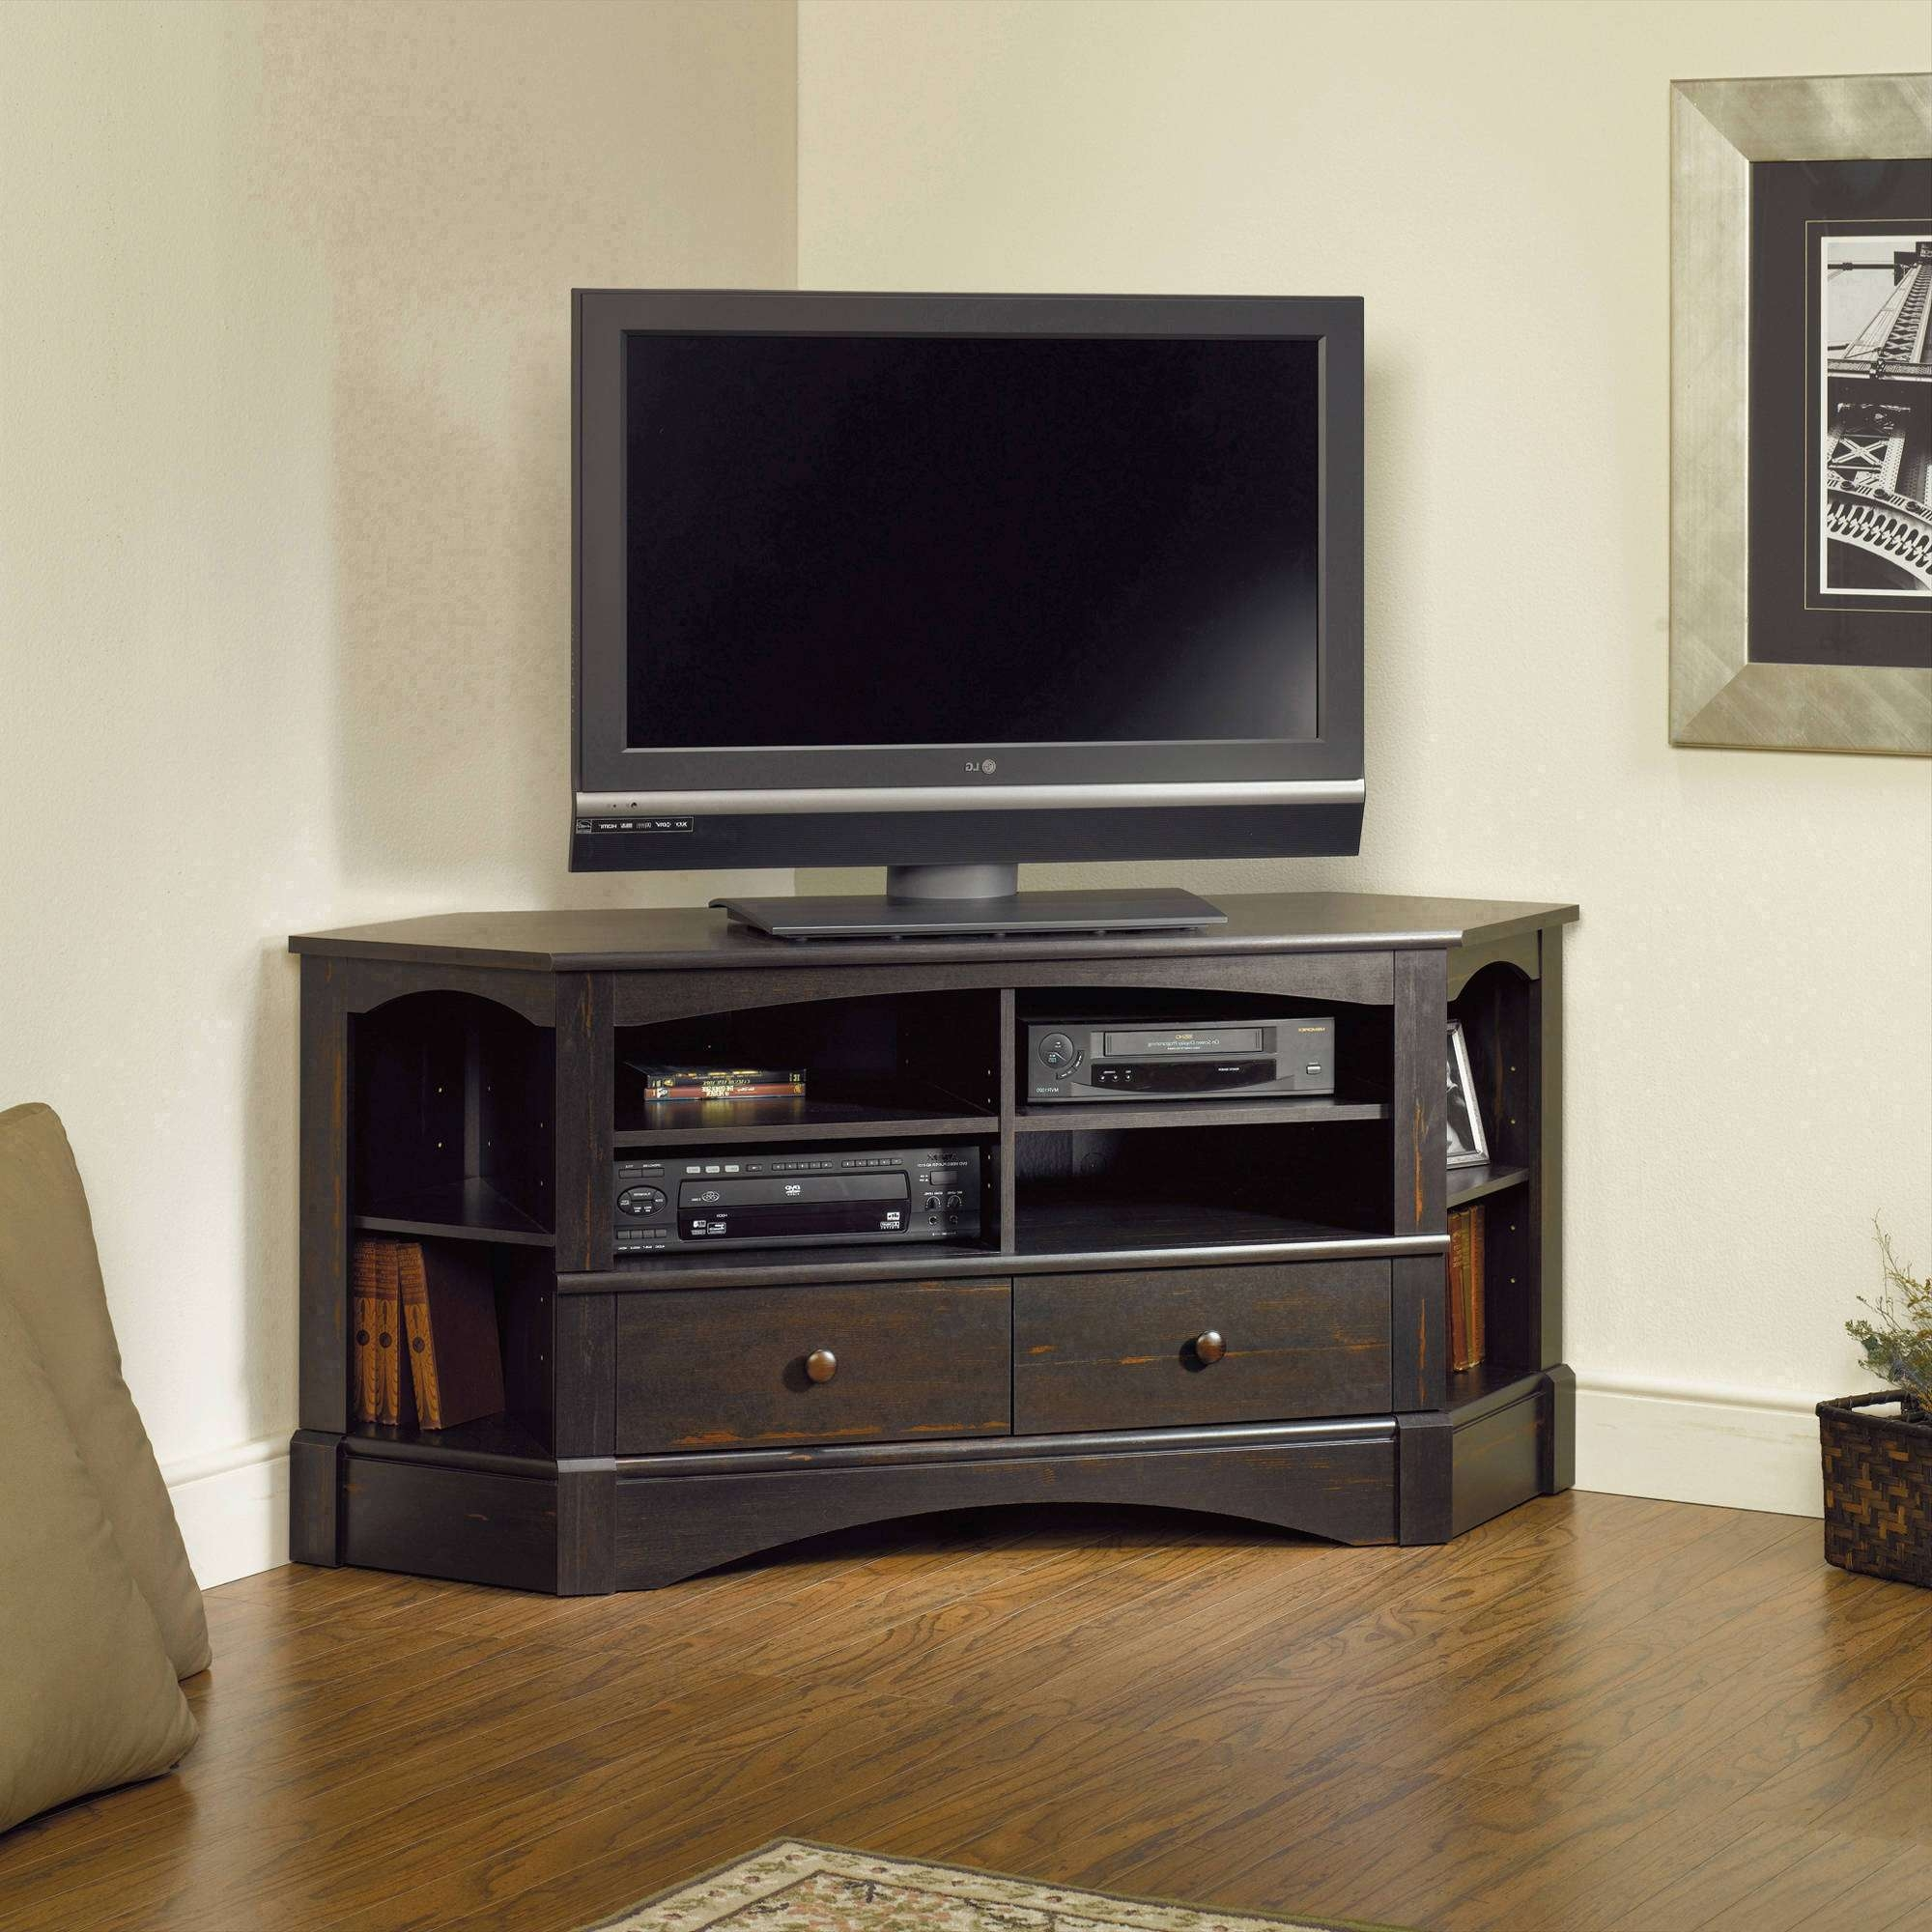 Tv Stand : South Shore Renta Corner Tv Stand For Tvs Up To With Regard To Black Corner Tv Stands For Tvs Up To (View 4 of 20)